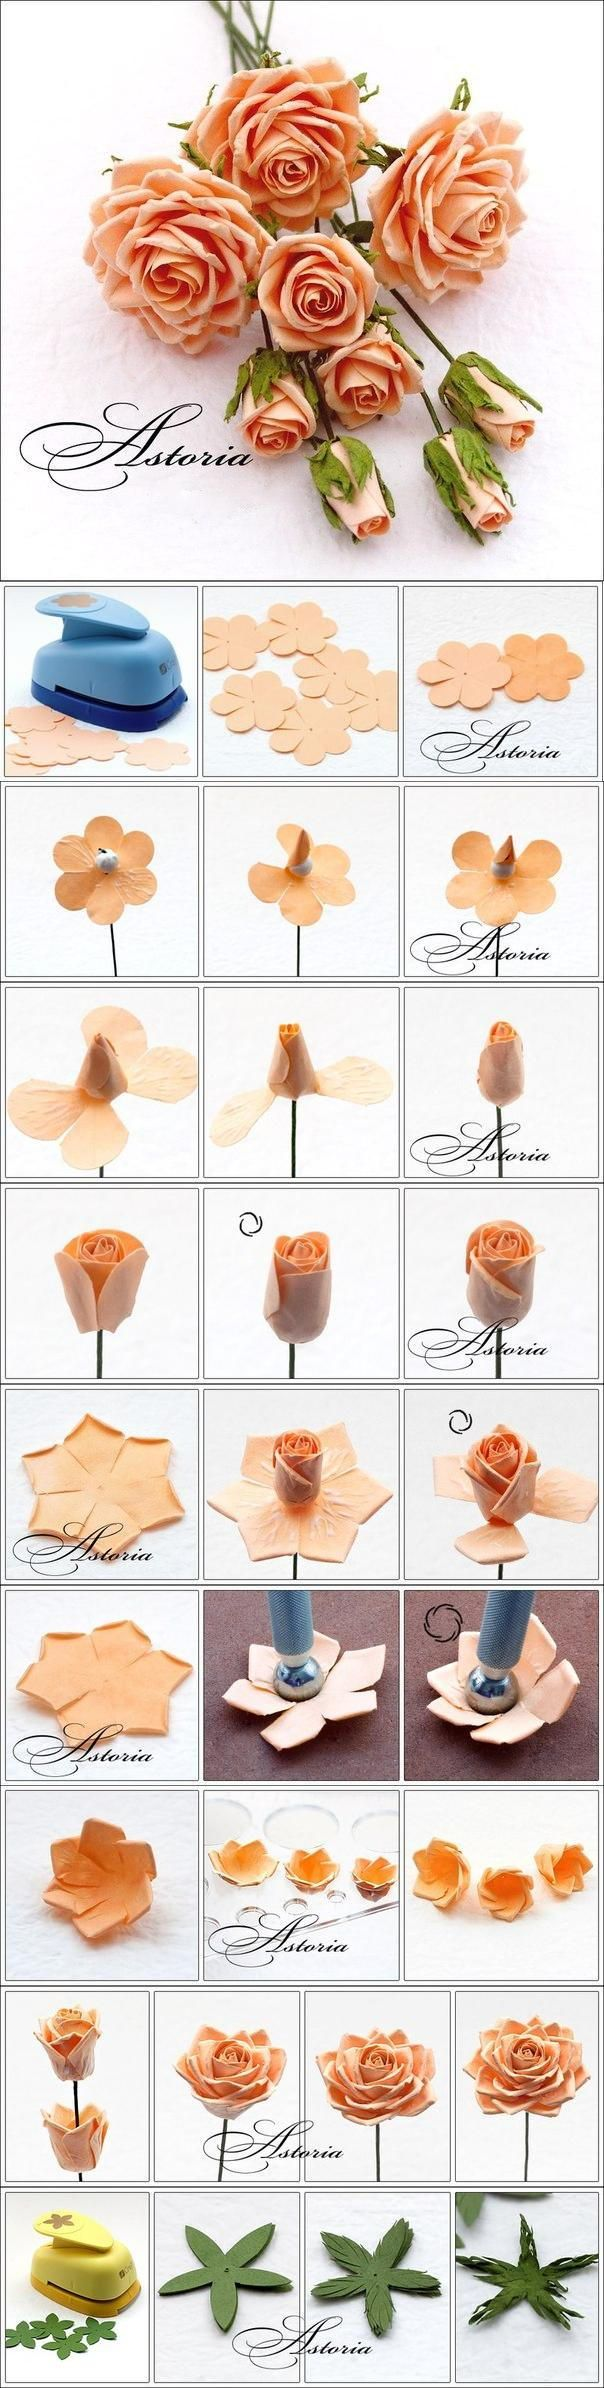 Small flowers for crafts - Inspirational Monday Do It Yourself Diy Flower Series Diy Flower From Small Flower To Full Bloom